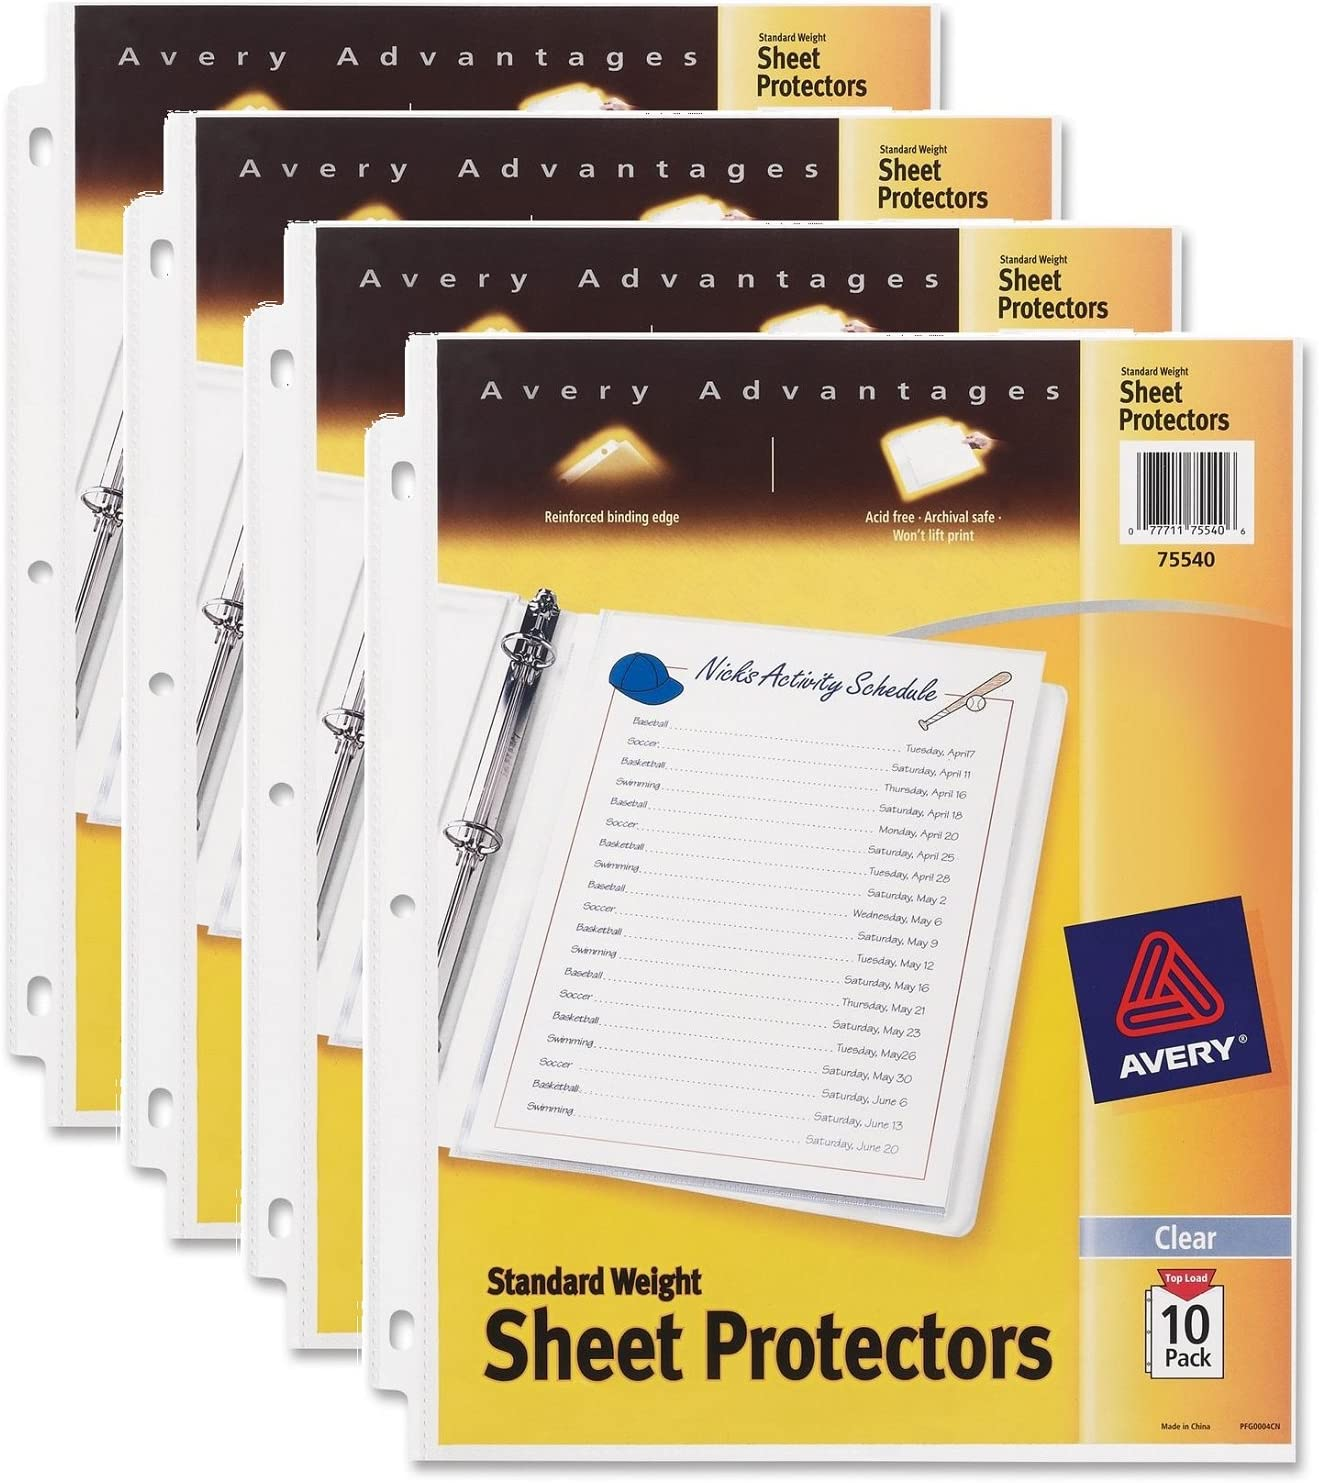 Avery Standard Weight Sheet Protectors, 10 Count, Pack of 4 (75540)